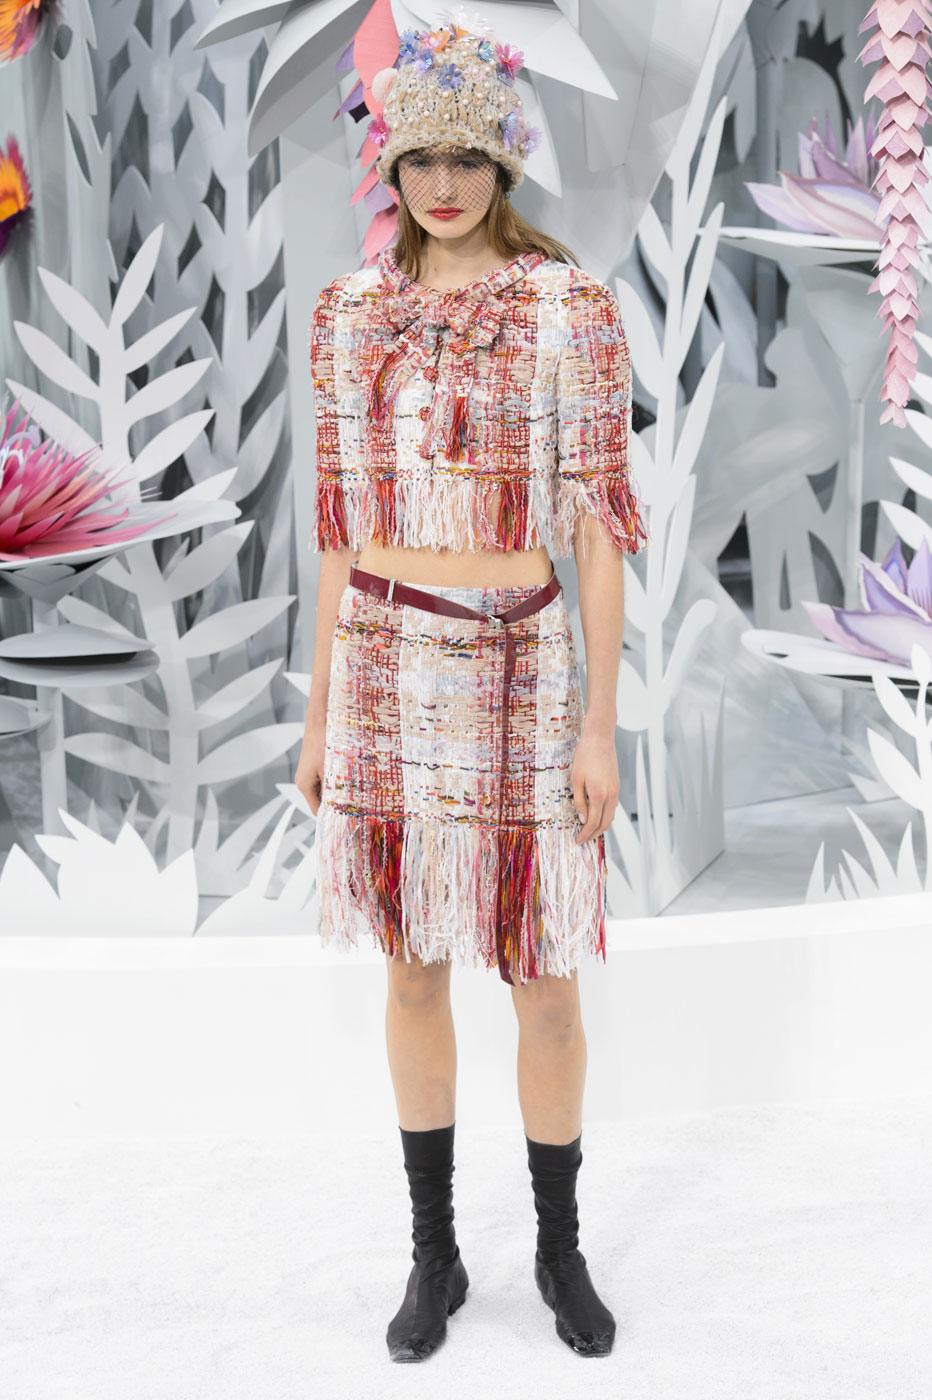 Chanel-fashion-runway-show-haute-couture-paris-spring-summer-2015-the-impression-064